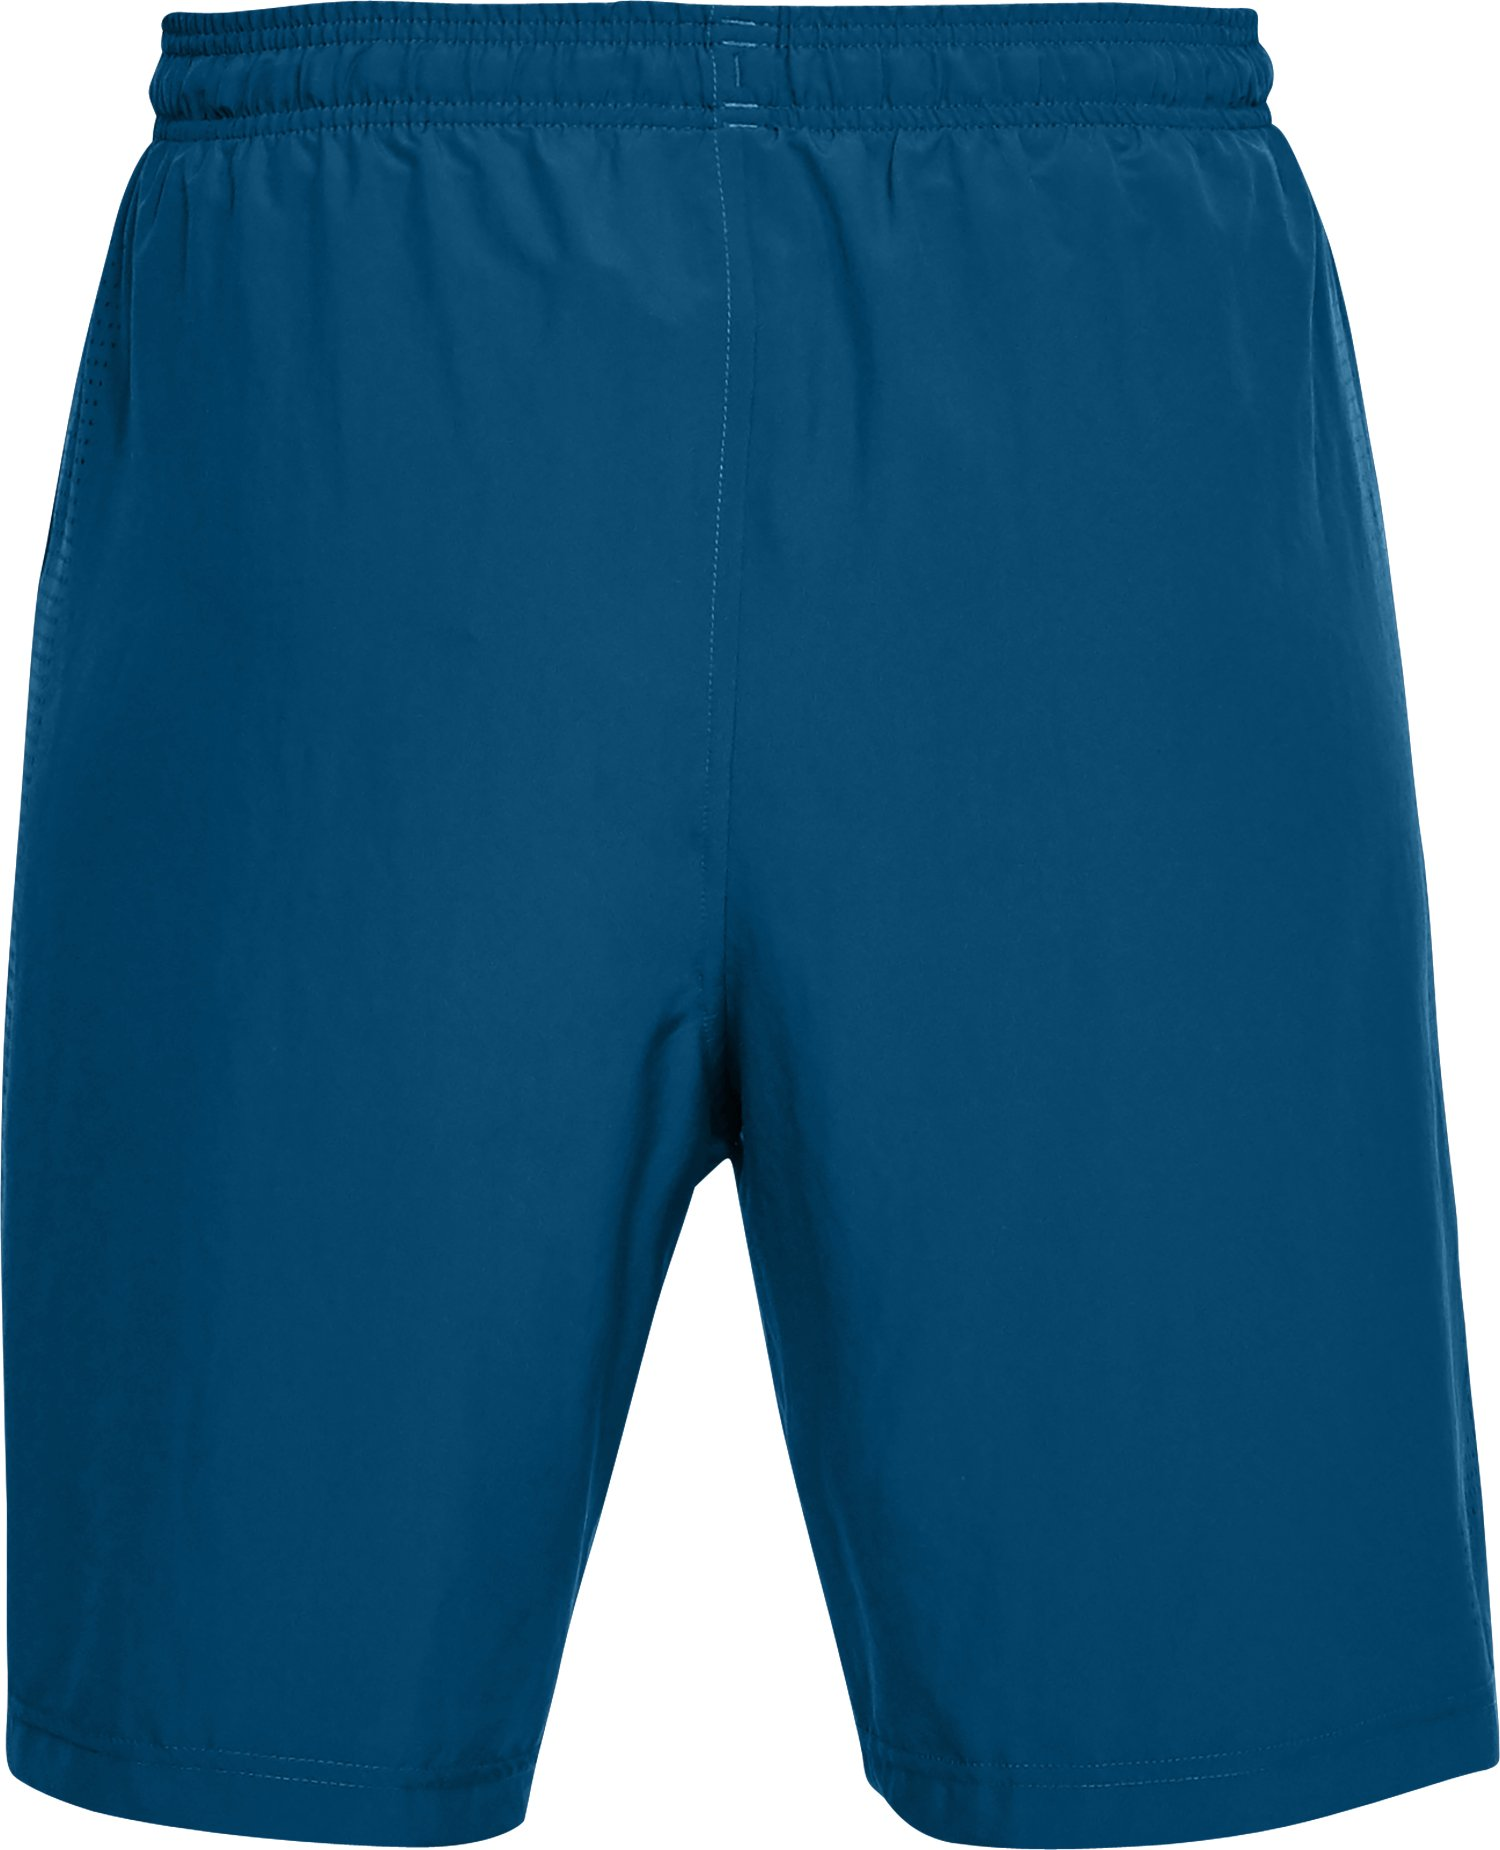 Men's UA Woven Graphic Shorts, MOROCCAN BLUE,